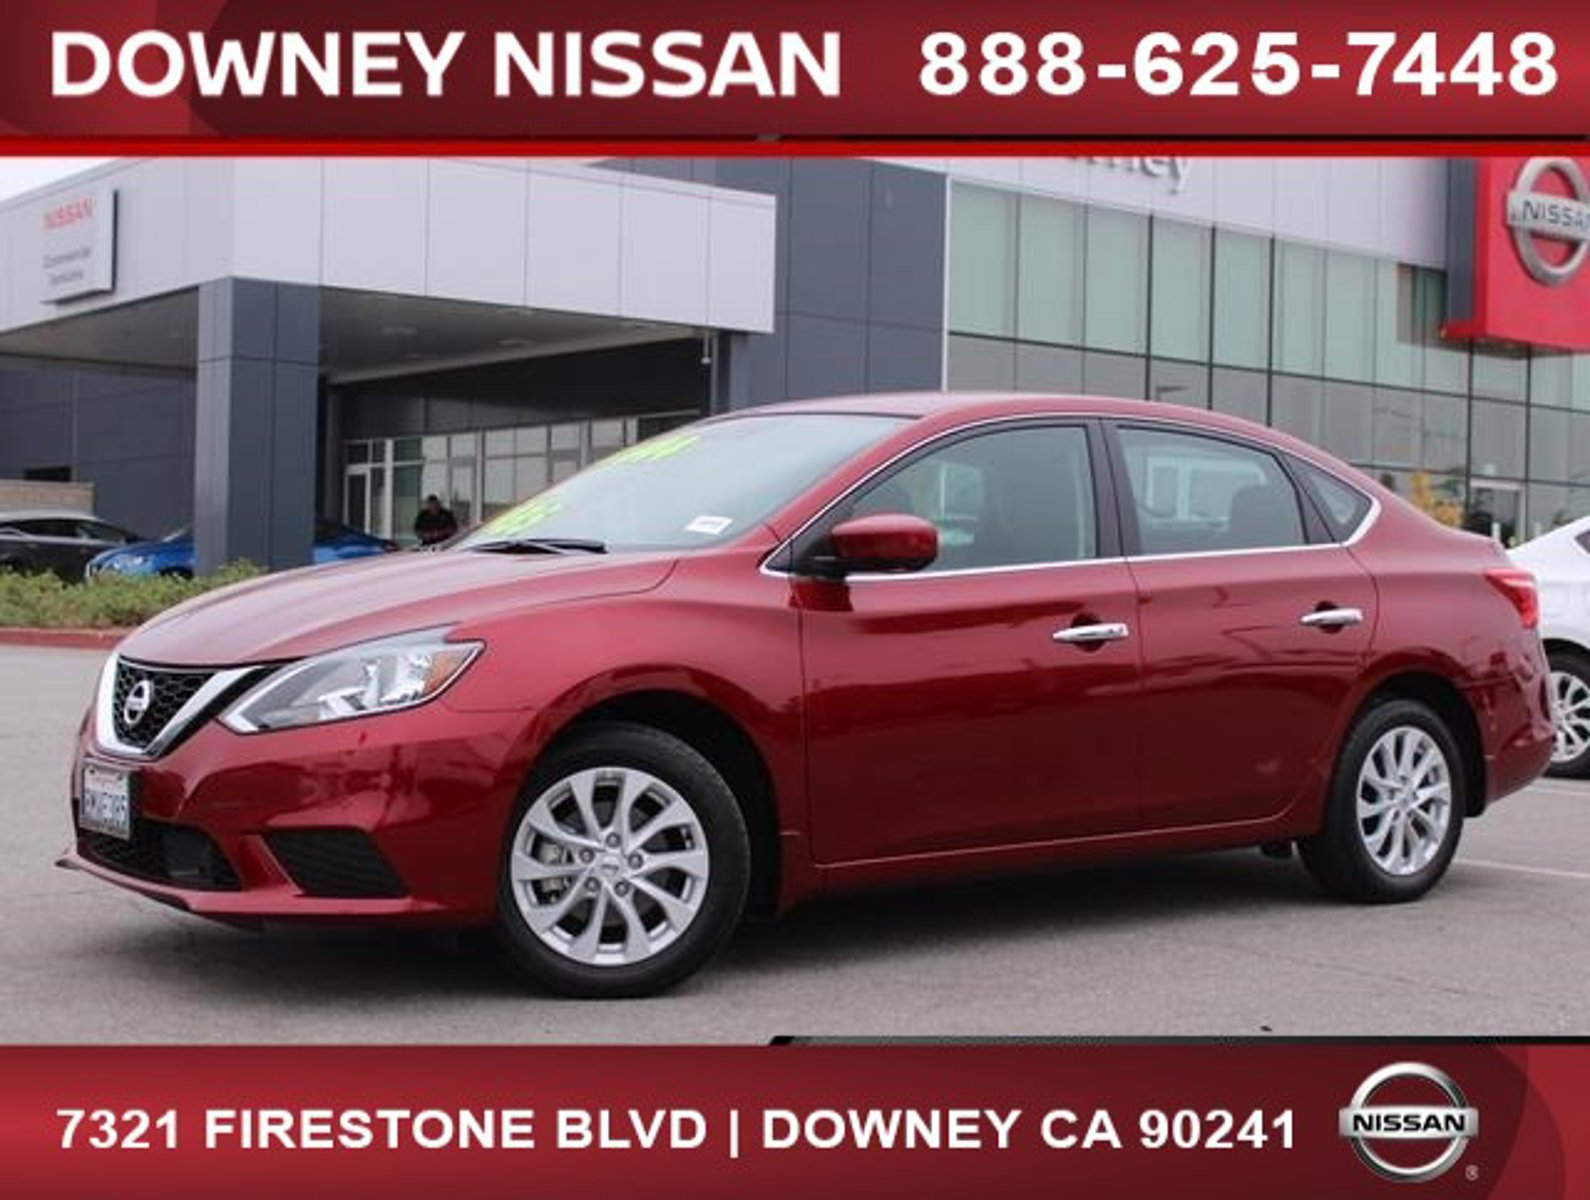 2019 Nissan Sentra SV SV CVT Regular Unleaded I-4 1.8 L/110 [17]